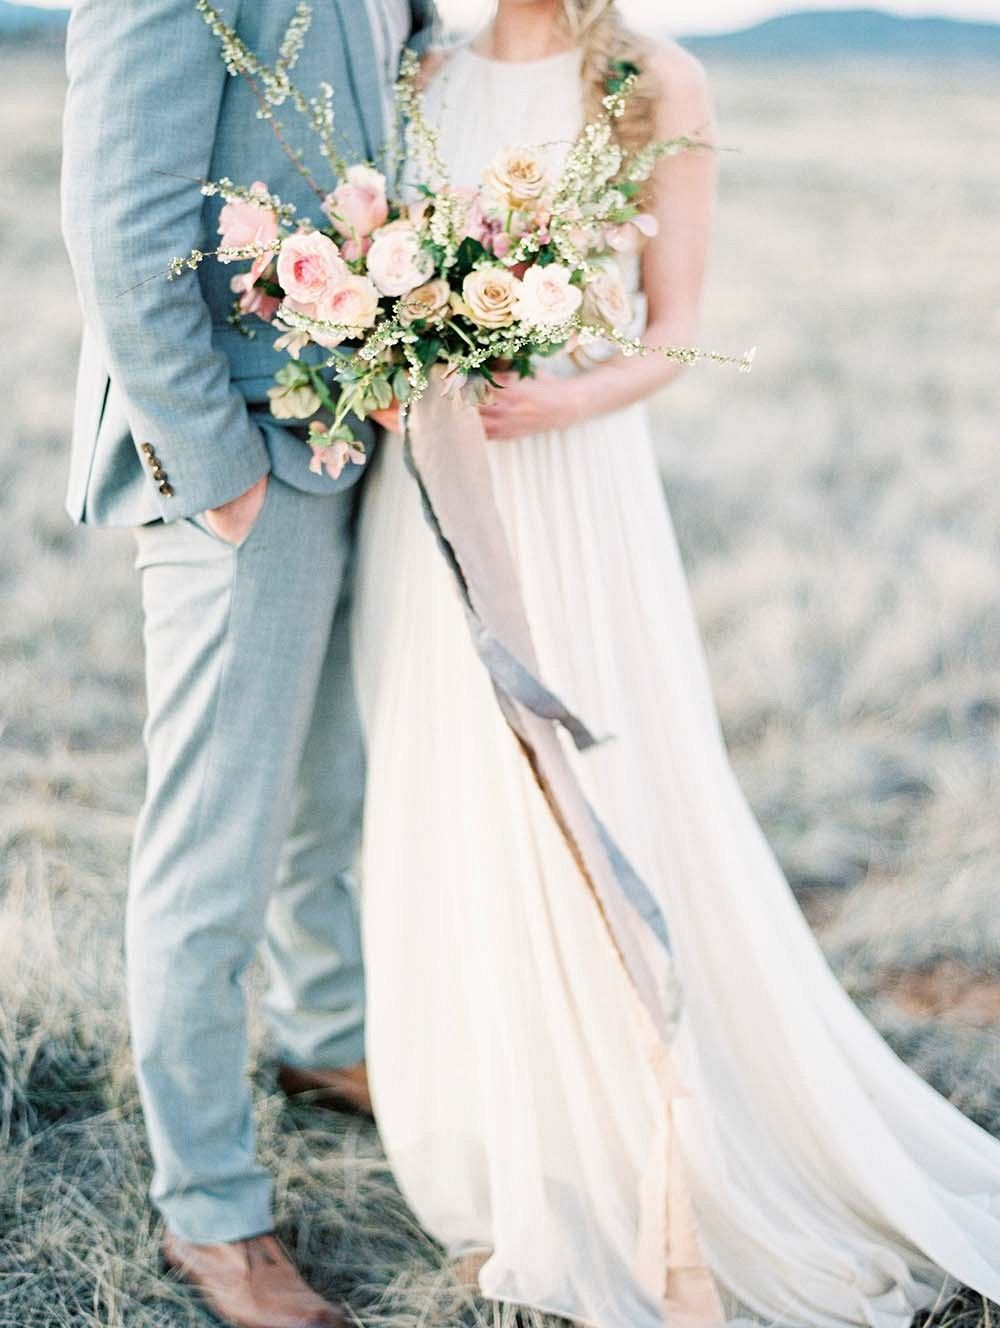 Romantic Desert Elopement By Jacquelyn Hayward Photography Find This Pin And More On My Dream Wedding